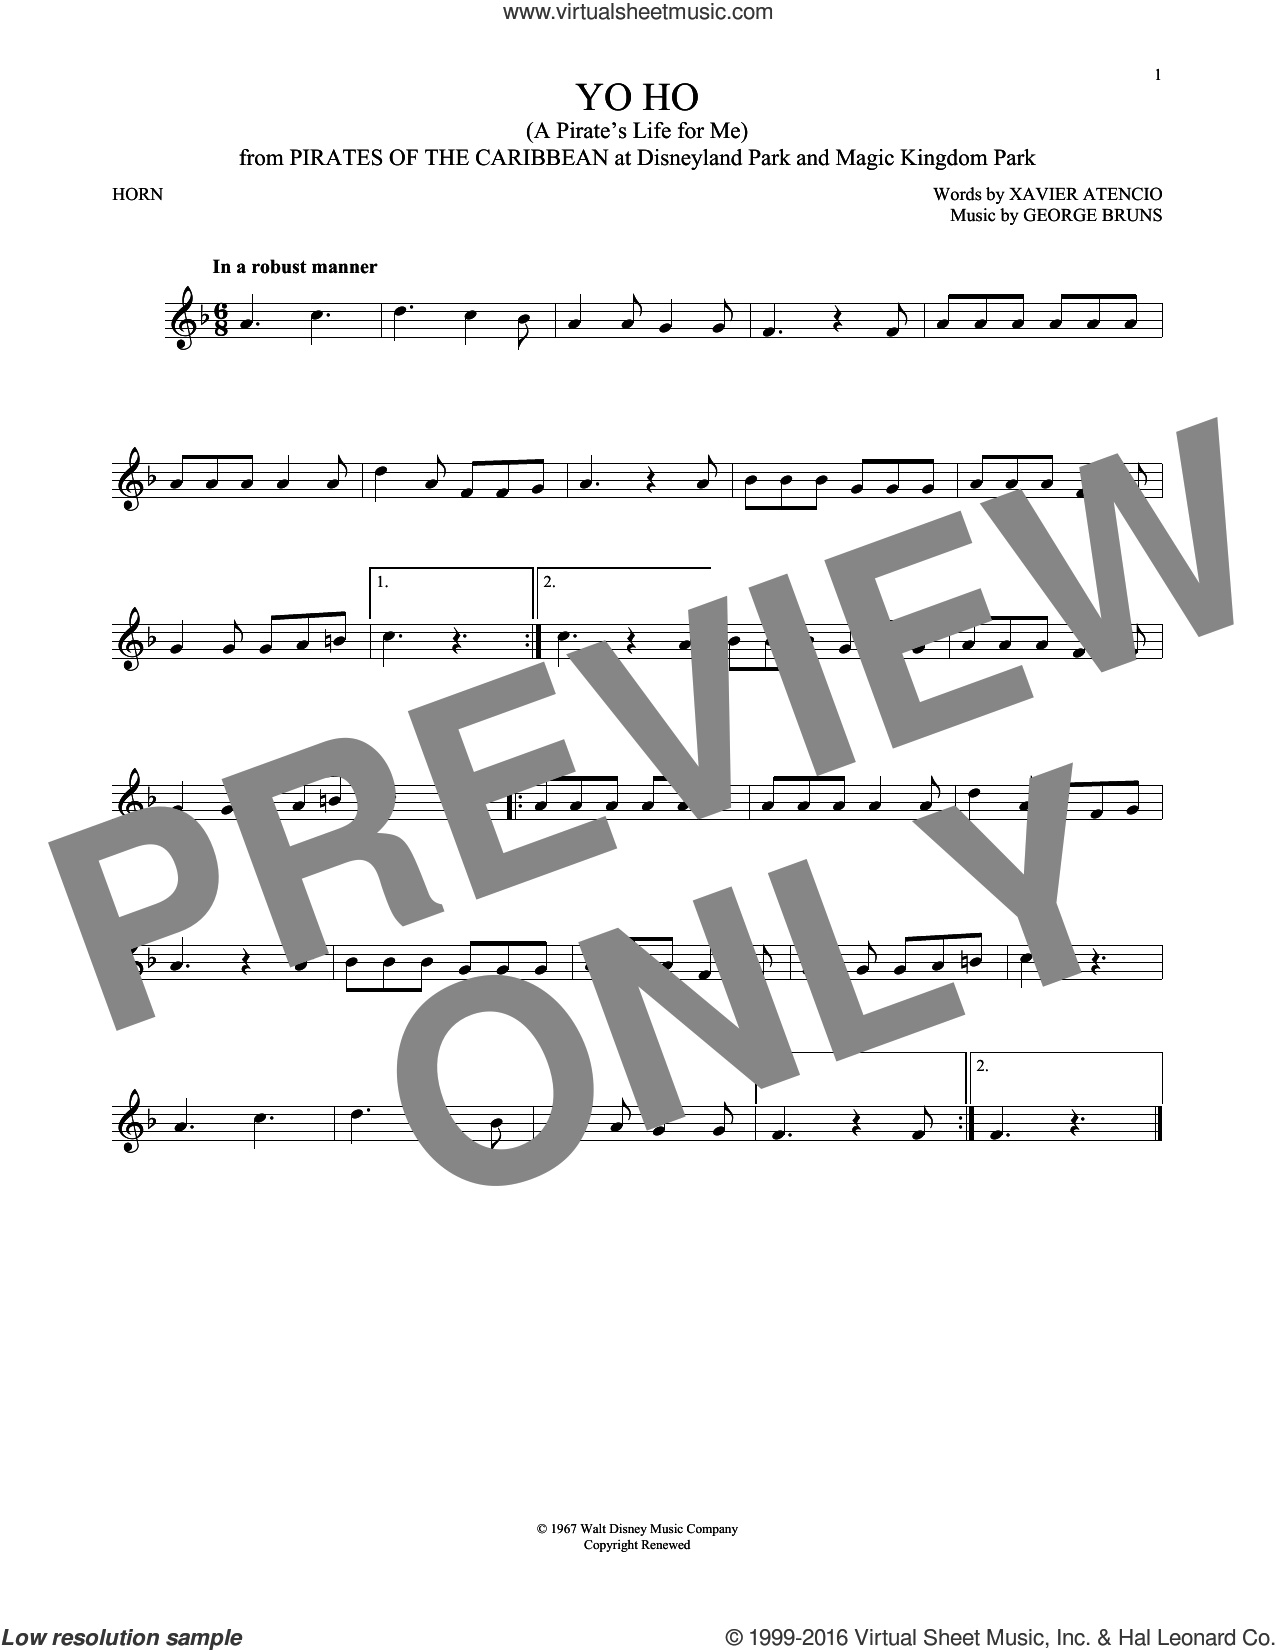 Yo Ho (A Pirate's Life For Me) sheet music for horn solo by George Bruns and Xavier Atencio, intermediate skill level